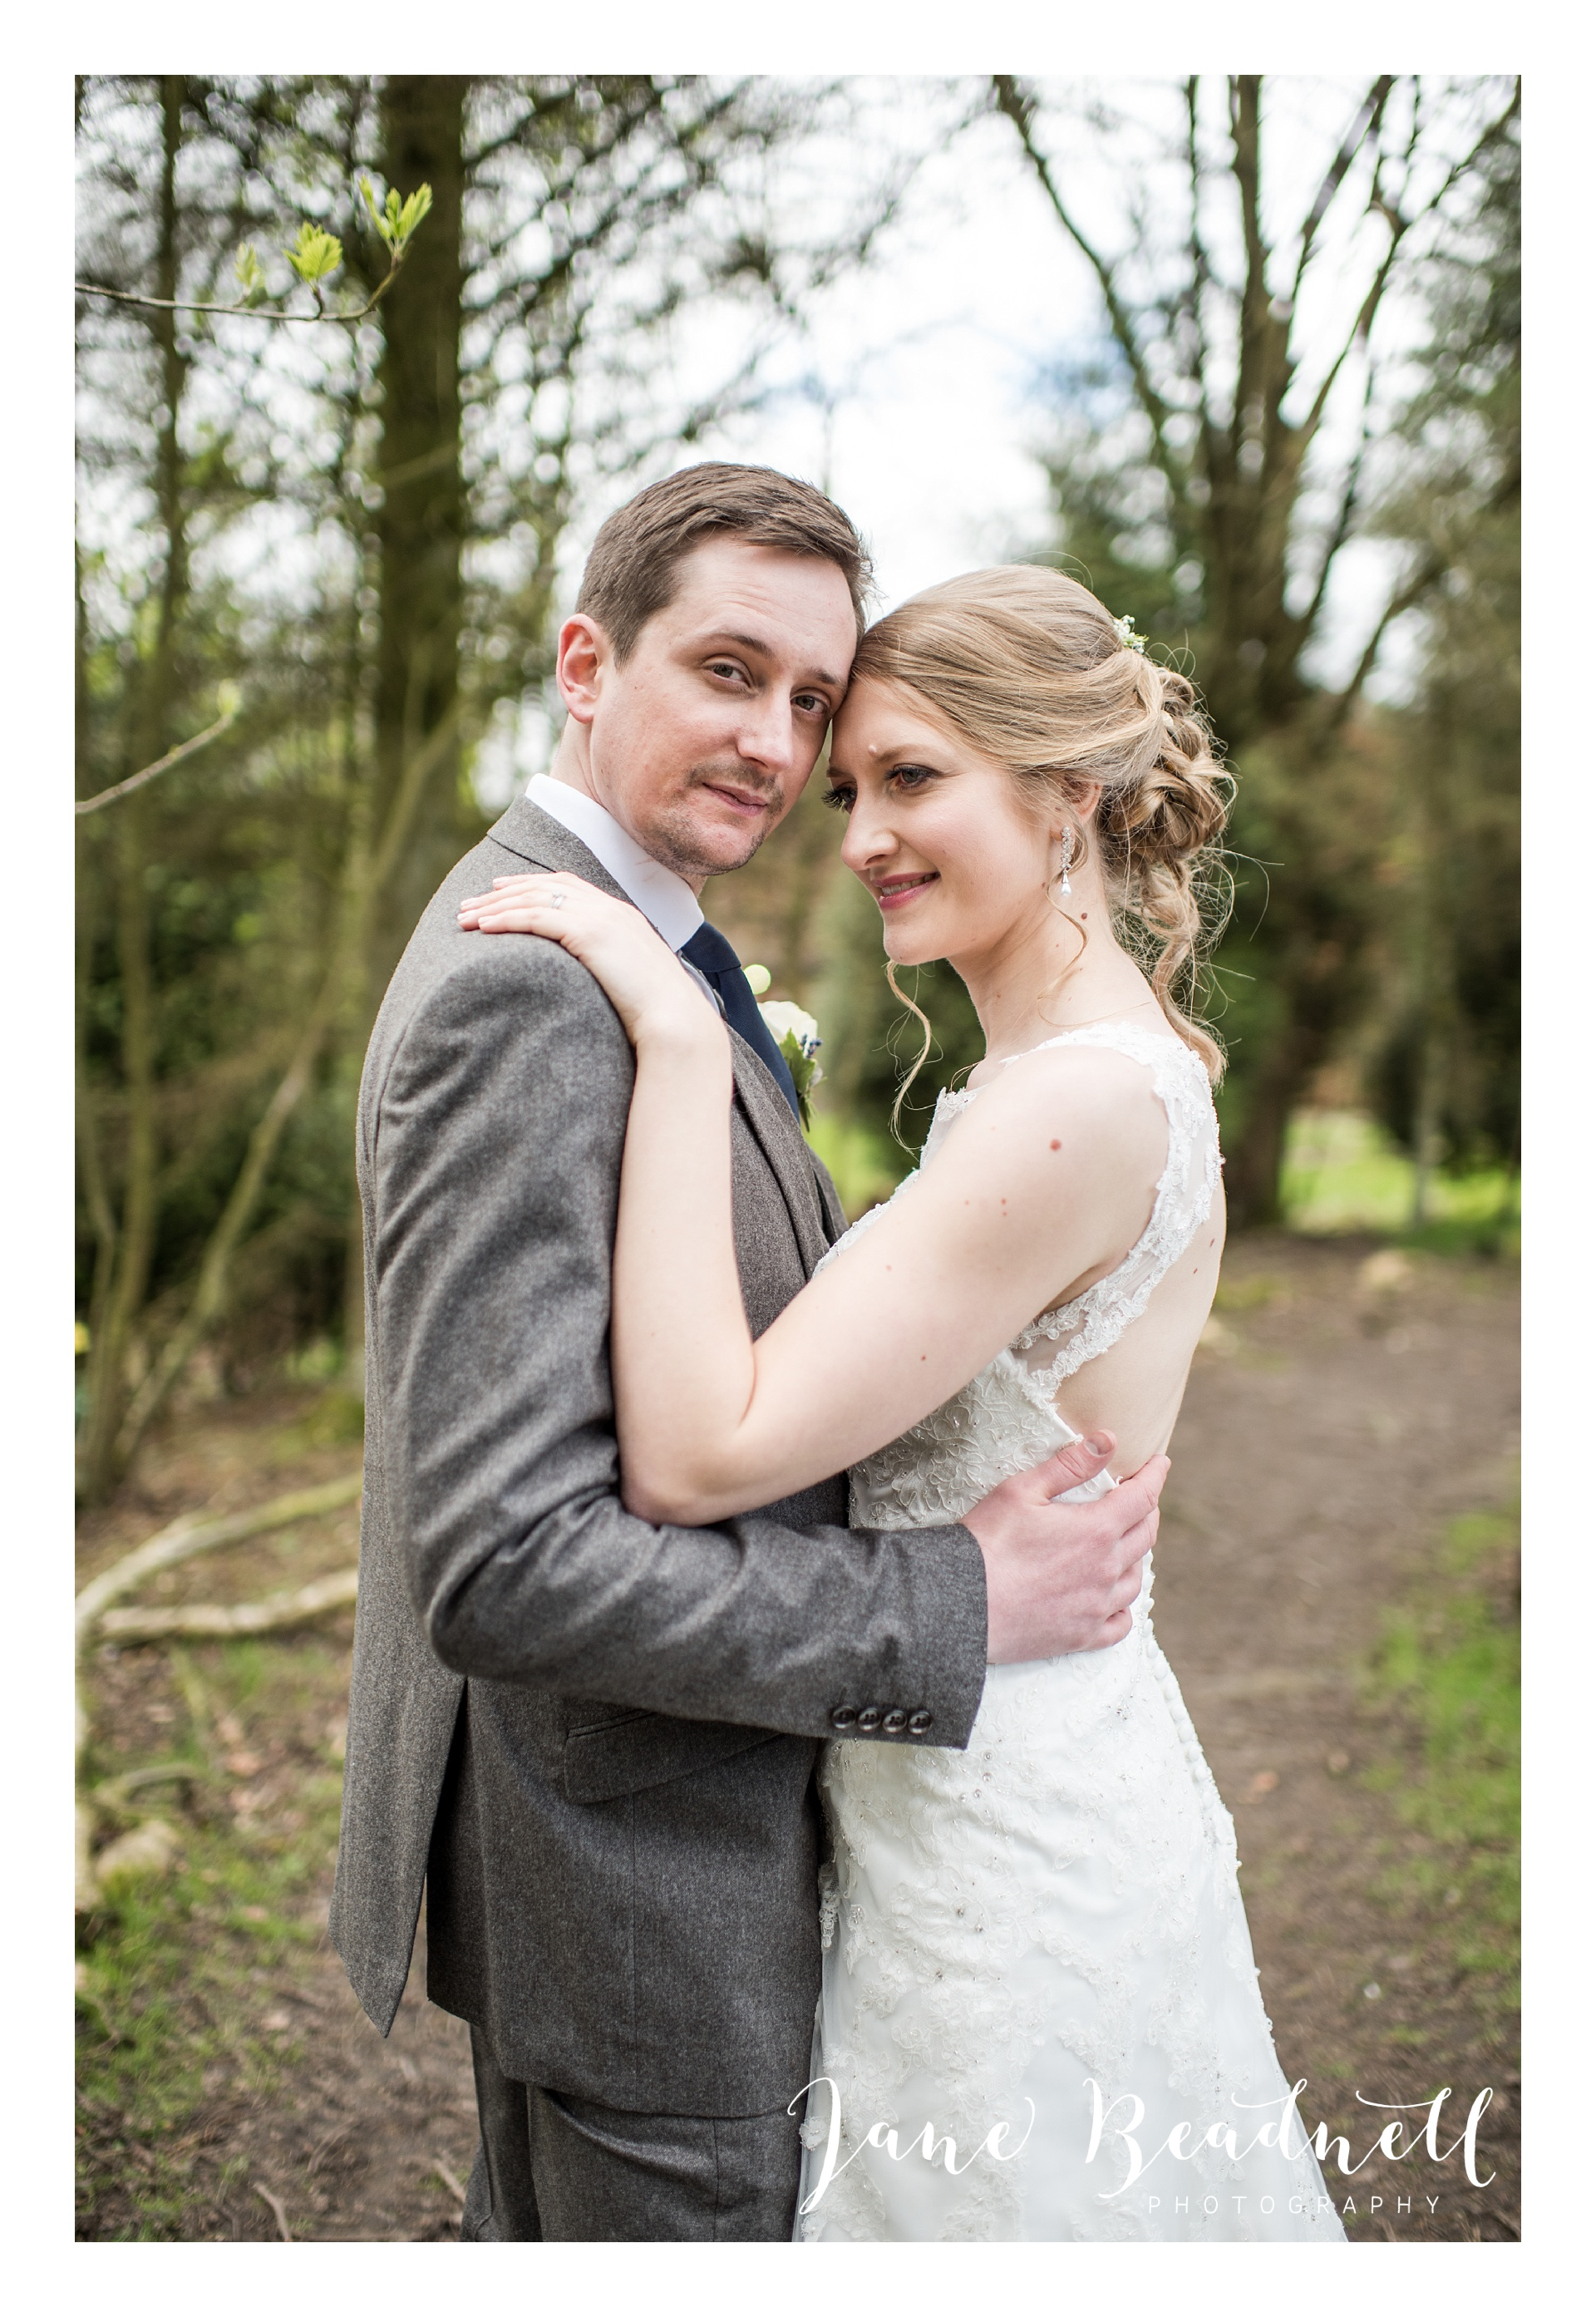 Otley Chevin Lodge wedding photography by Jane Beadnell Photography Leeds_0097